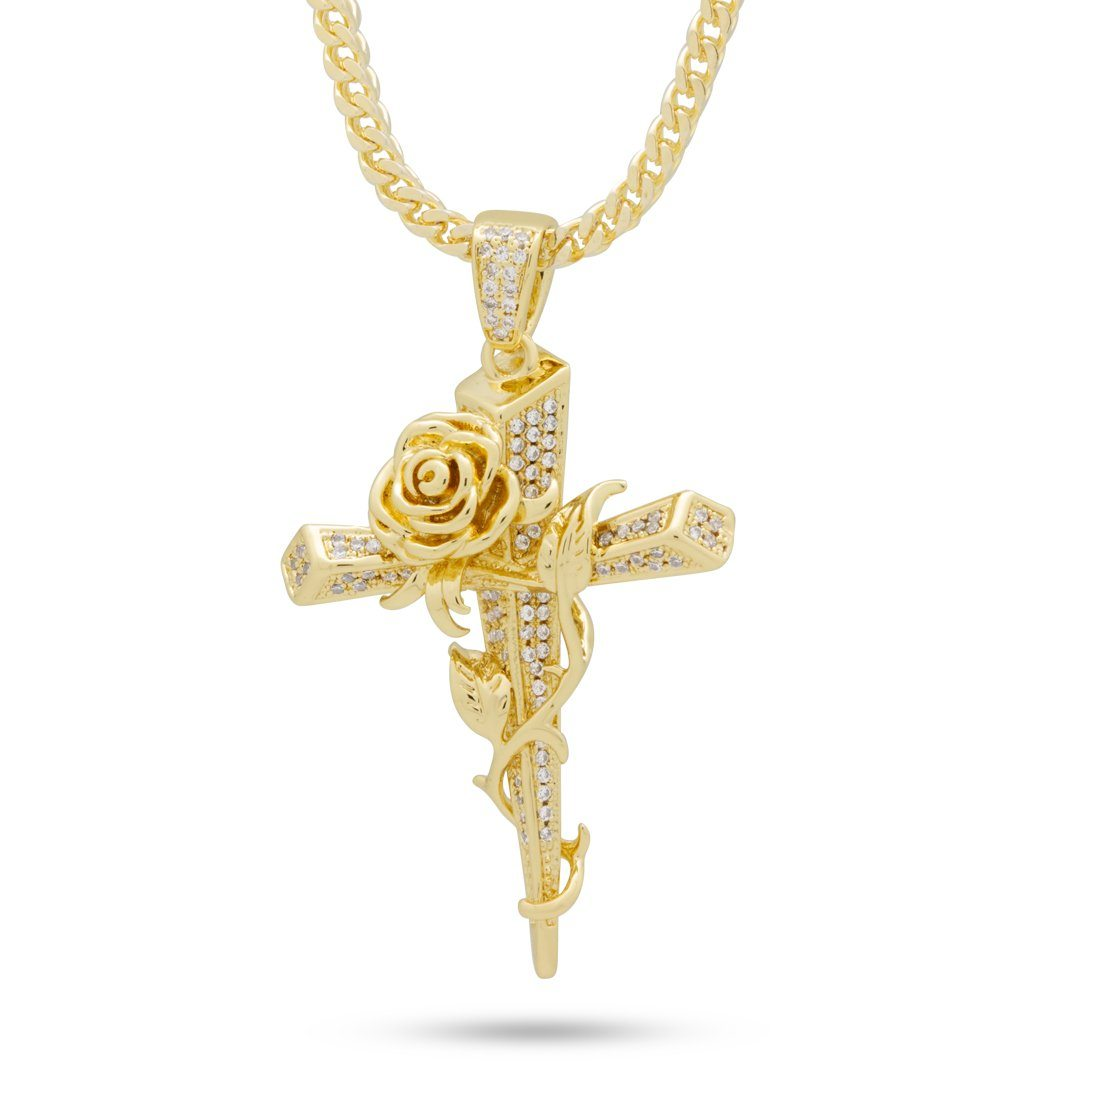 The Gold Thorned Cross Necklace